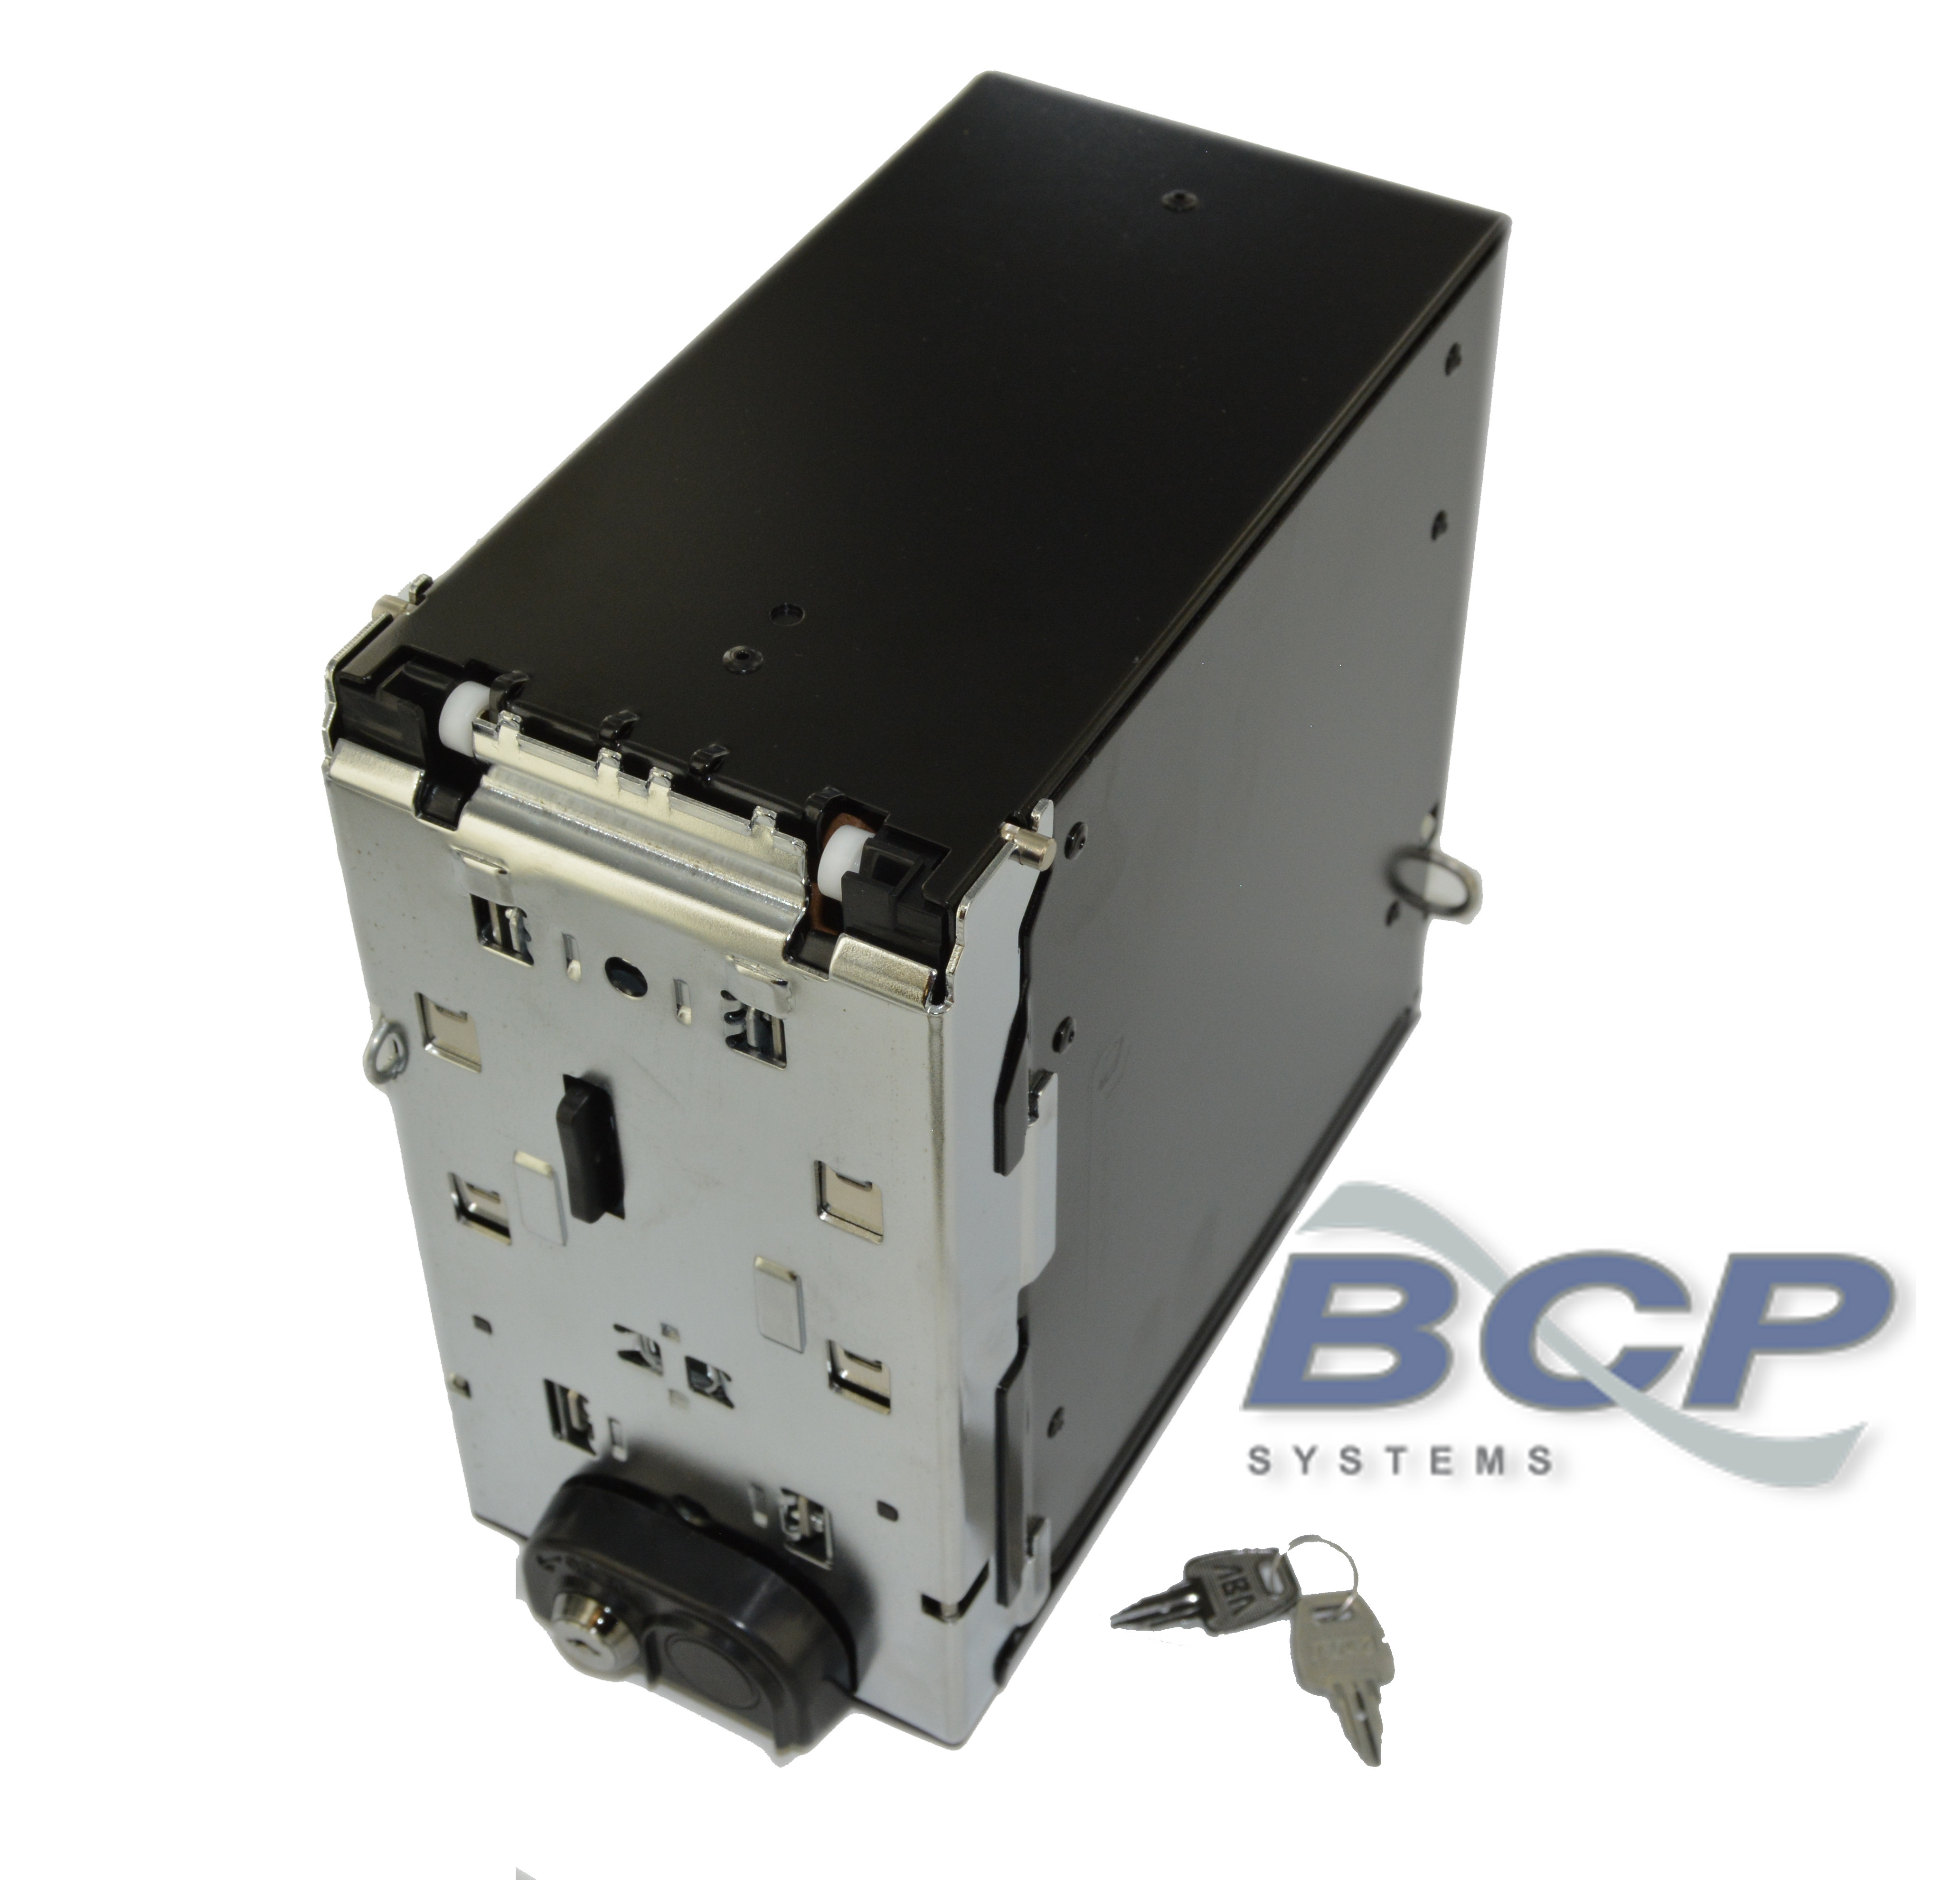 Bcp Systems Specialized Wire Harness Assembly And Repair Services Seal Cascash Cassette 1000 Notes Two Locks Cashcode With Tab